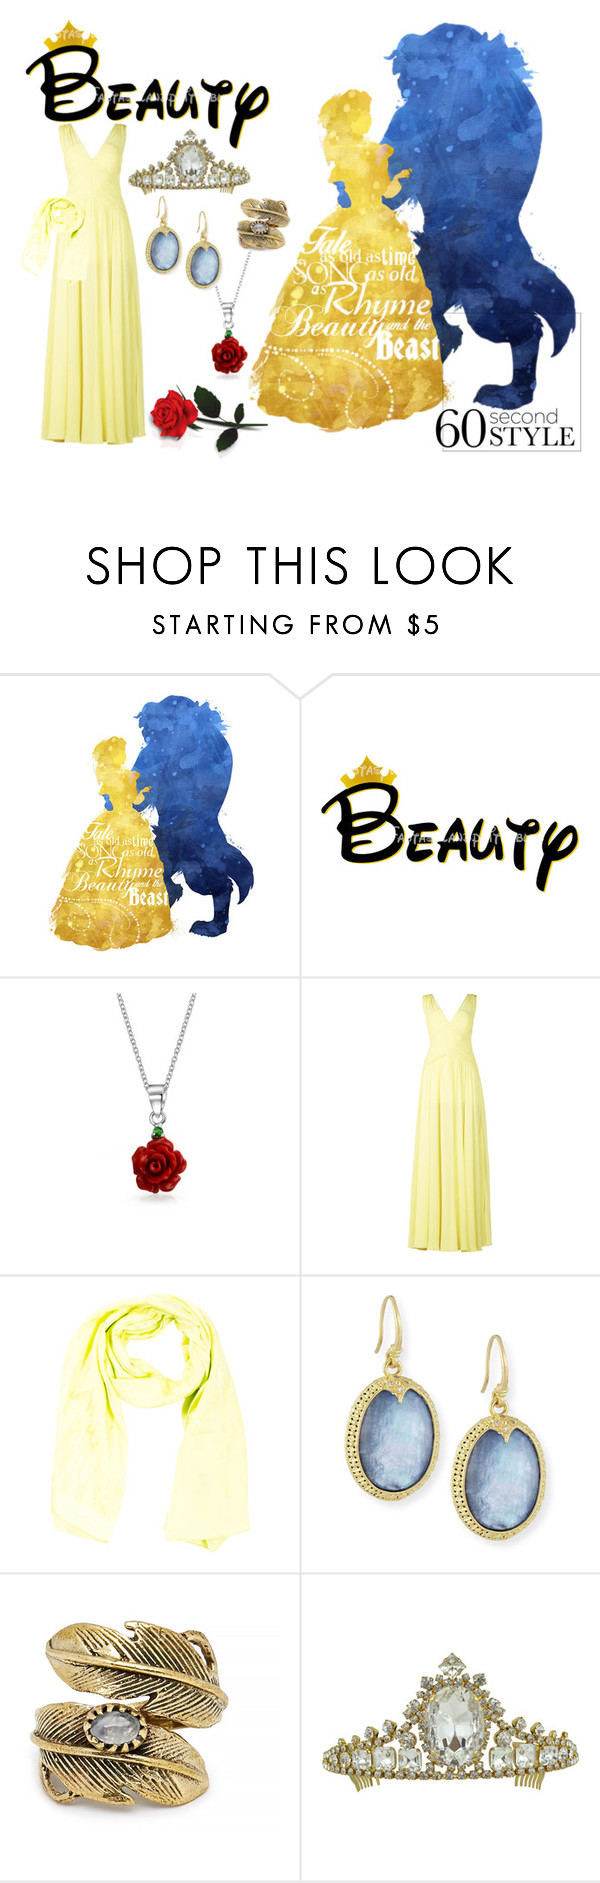 """""""Beauty"""" by mspoisonivey ❤ liked on Polyvore featuring Bling Jewelry, BCBGMAXAZRIA, Hermès, Armenta, Natalie B and Costume"""